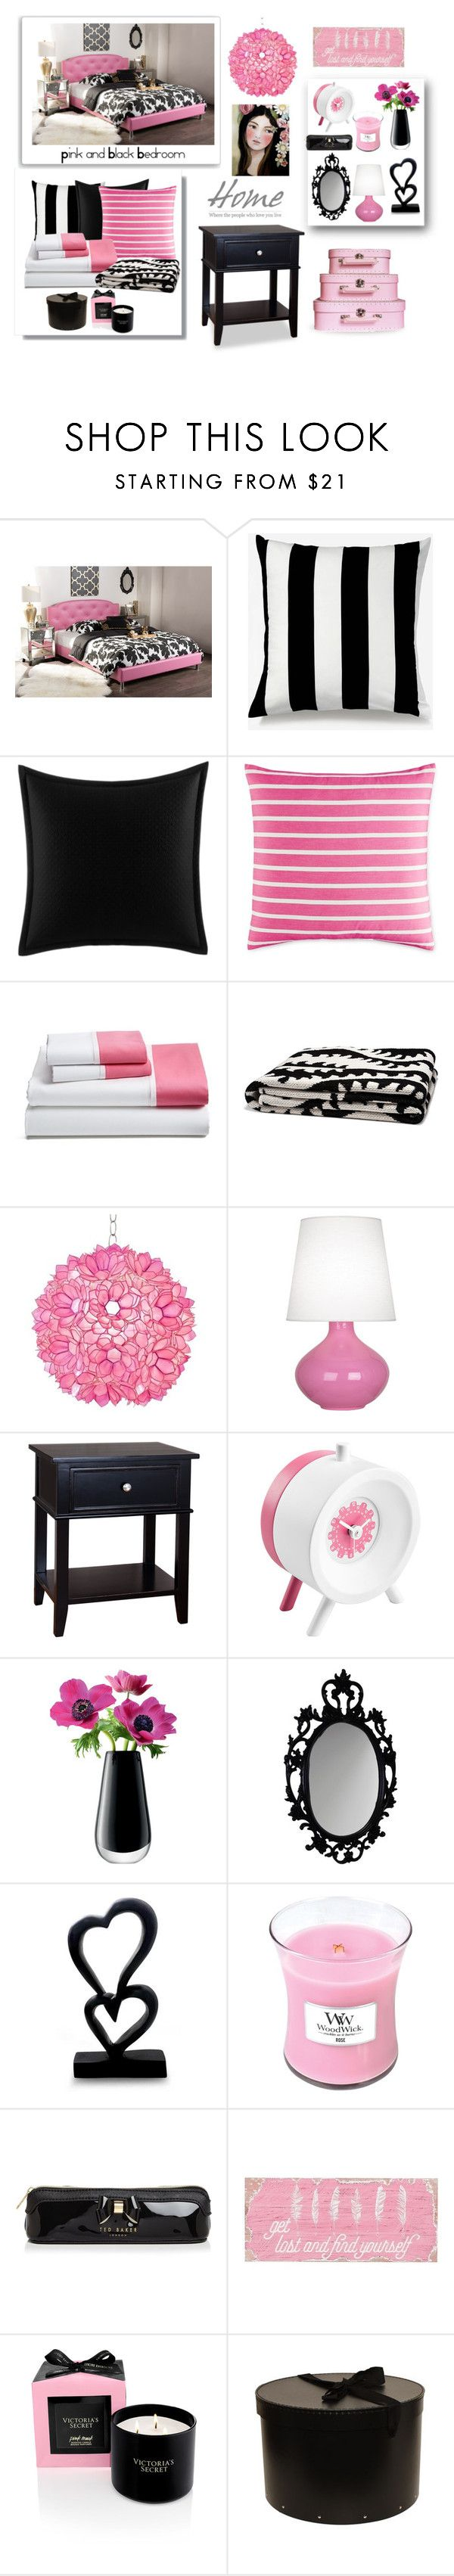 """""""Pink and Black Bedroom"""" by terry-tlc ❤ liked on Polyvore featuring interior, interiors, interior design, home, home decor, interior decorating, Baxton Studio, Unison, Betsey Johnson and Kate Spade"""